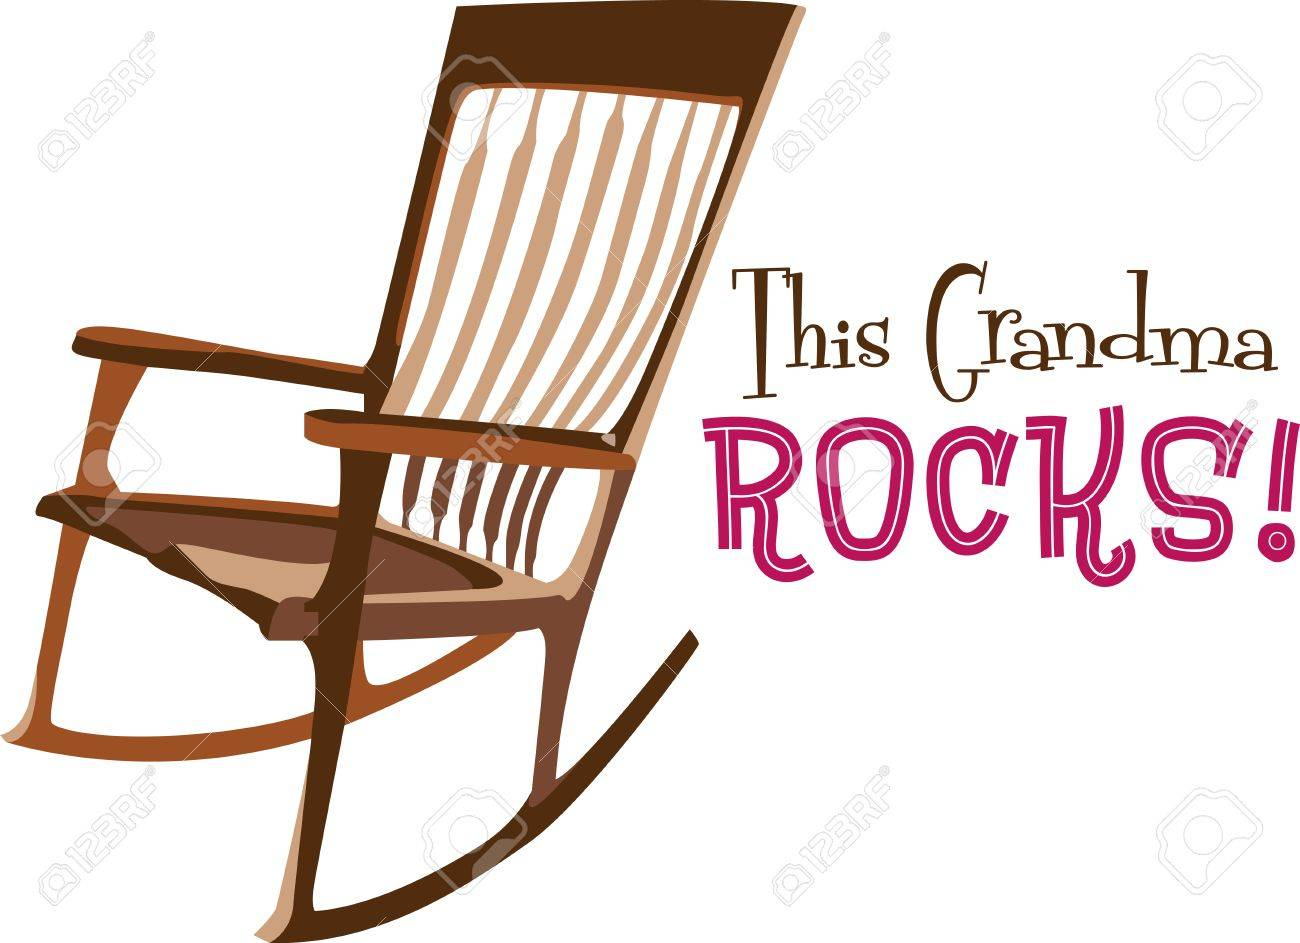 Get The Stylish And Comfortable Rocking Chairs For Your Home